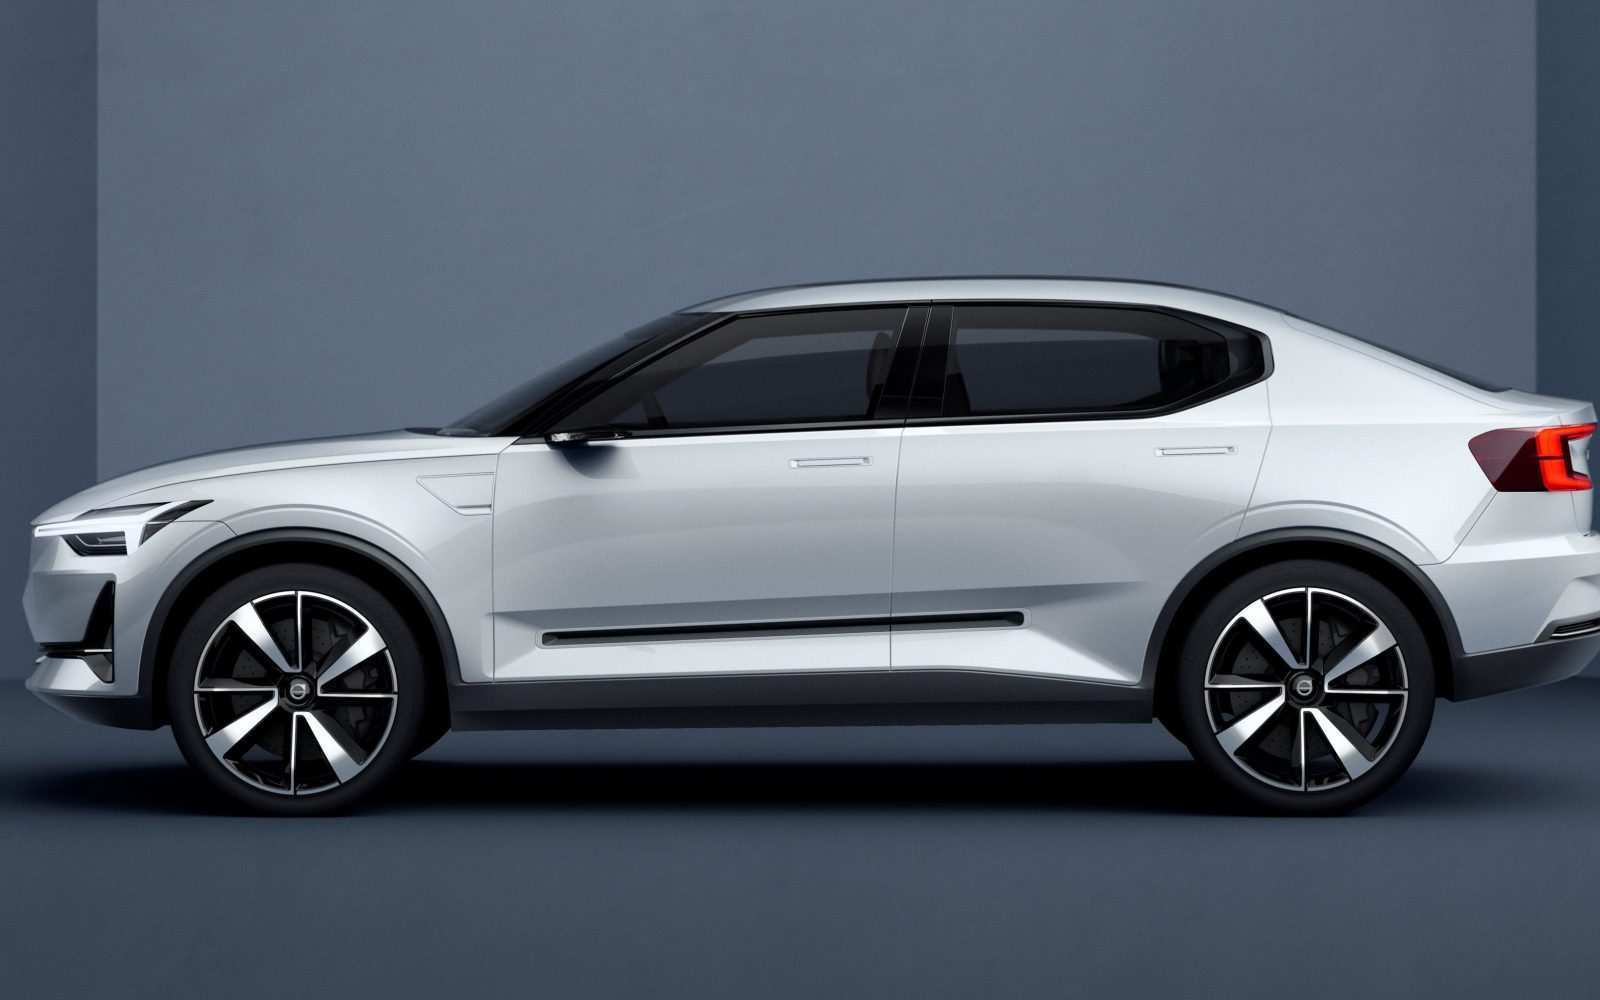 75 Best Review Volvo 2019 Electric Car Price with Volvo 2019 Electric Car